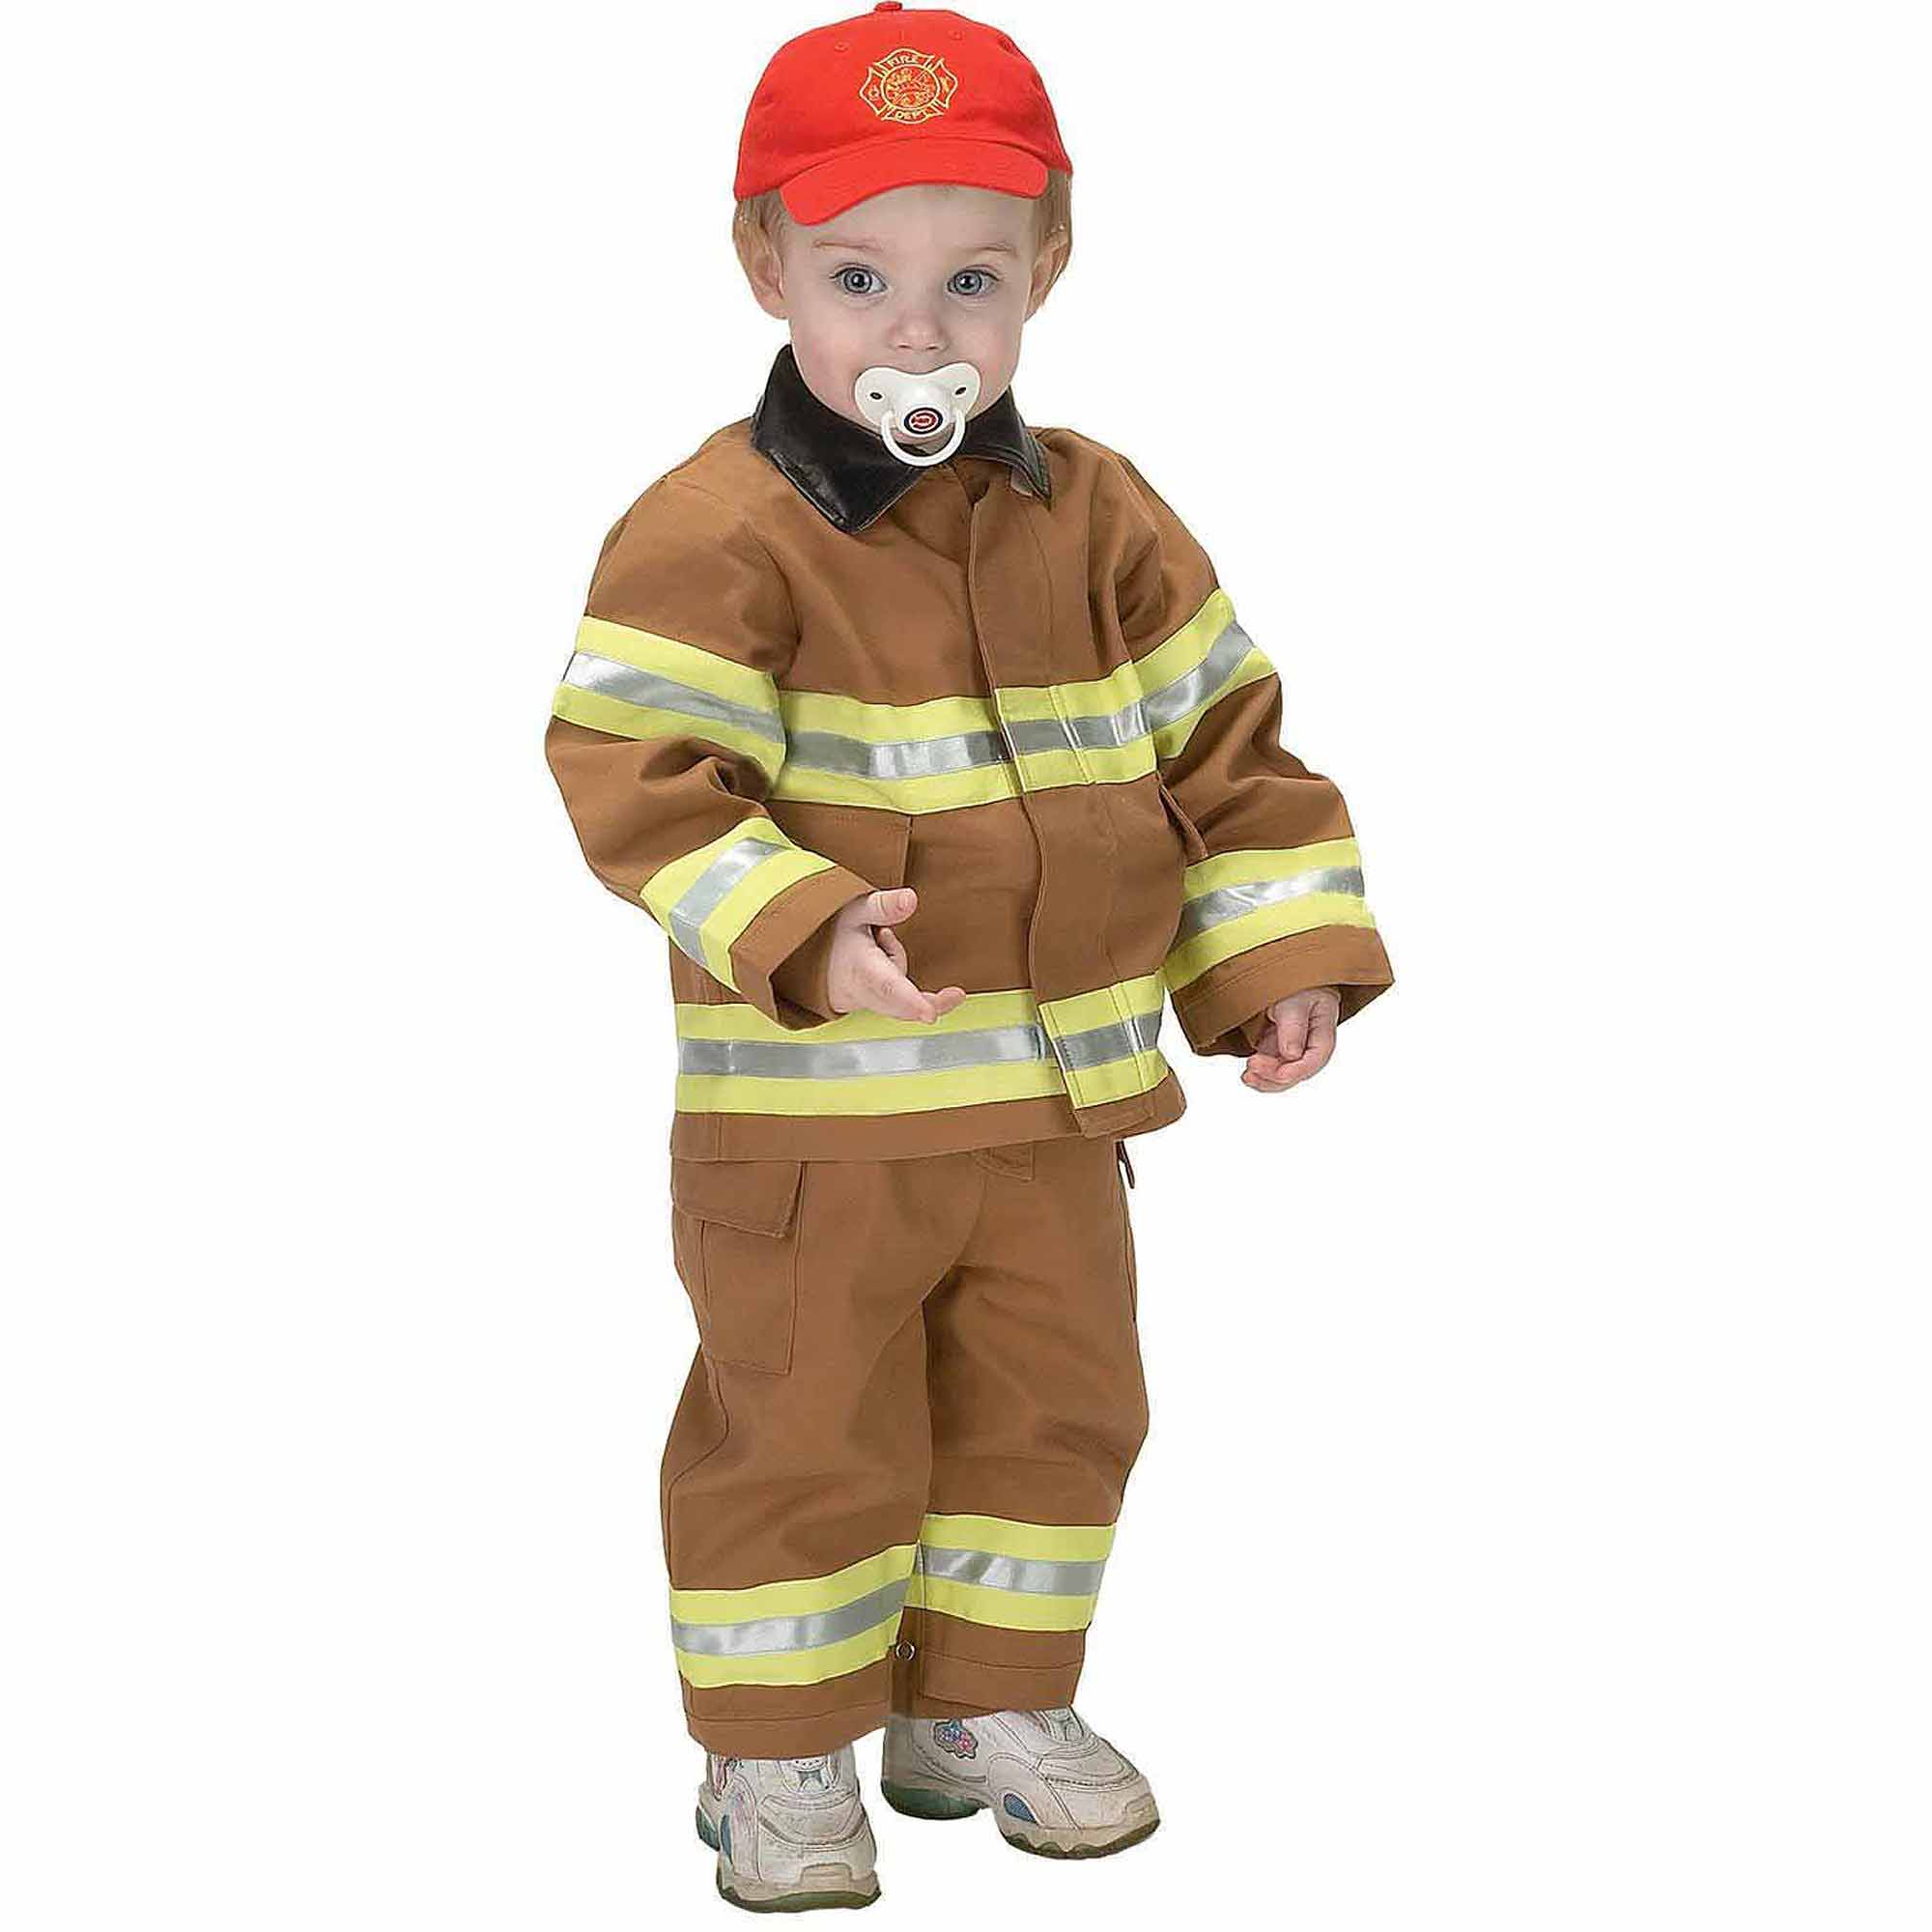 Jr. Fire Fighter Suit Tan Toddler Halloween Costume, Size 12-18 Months